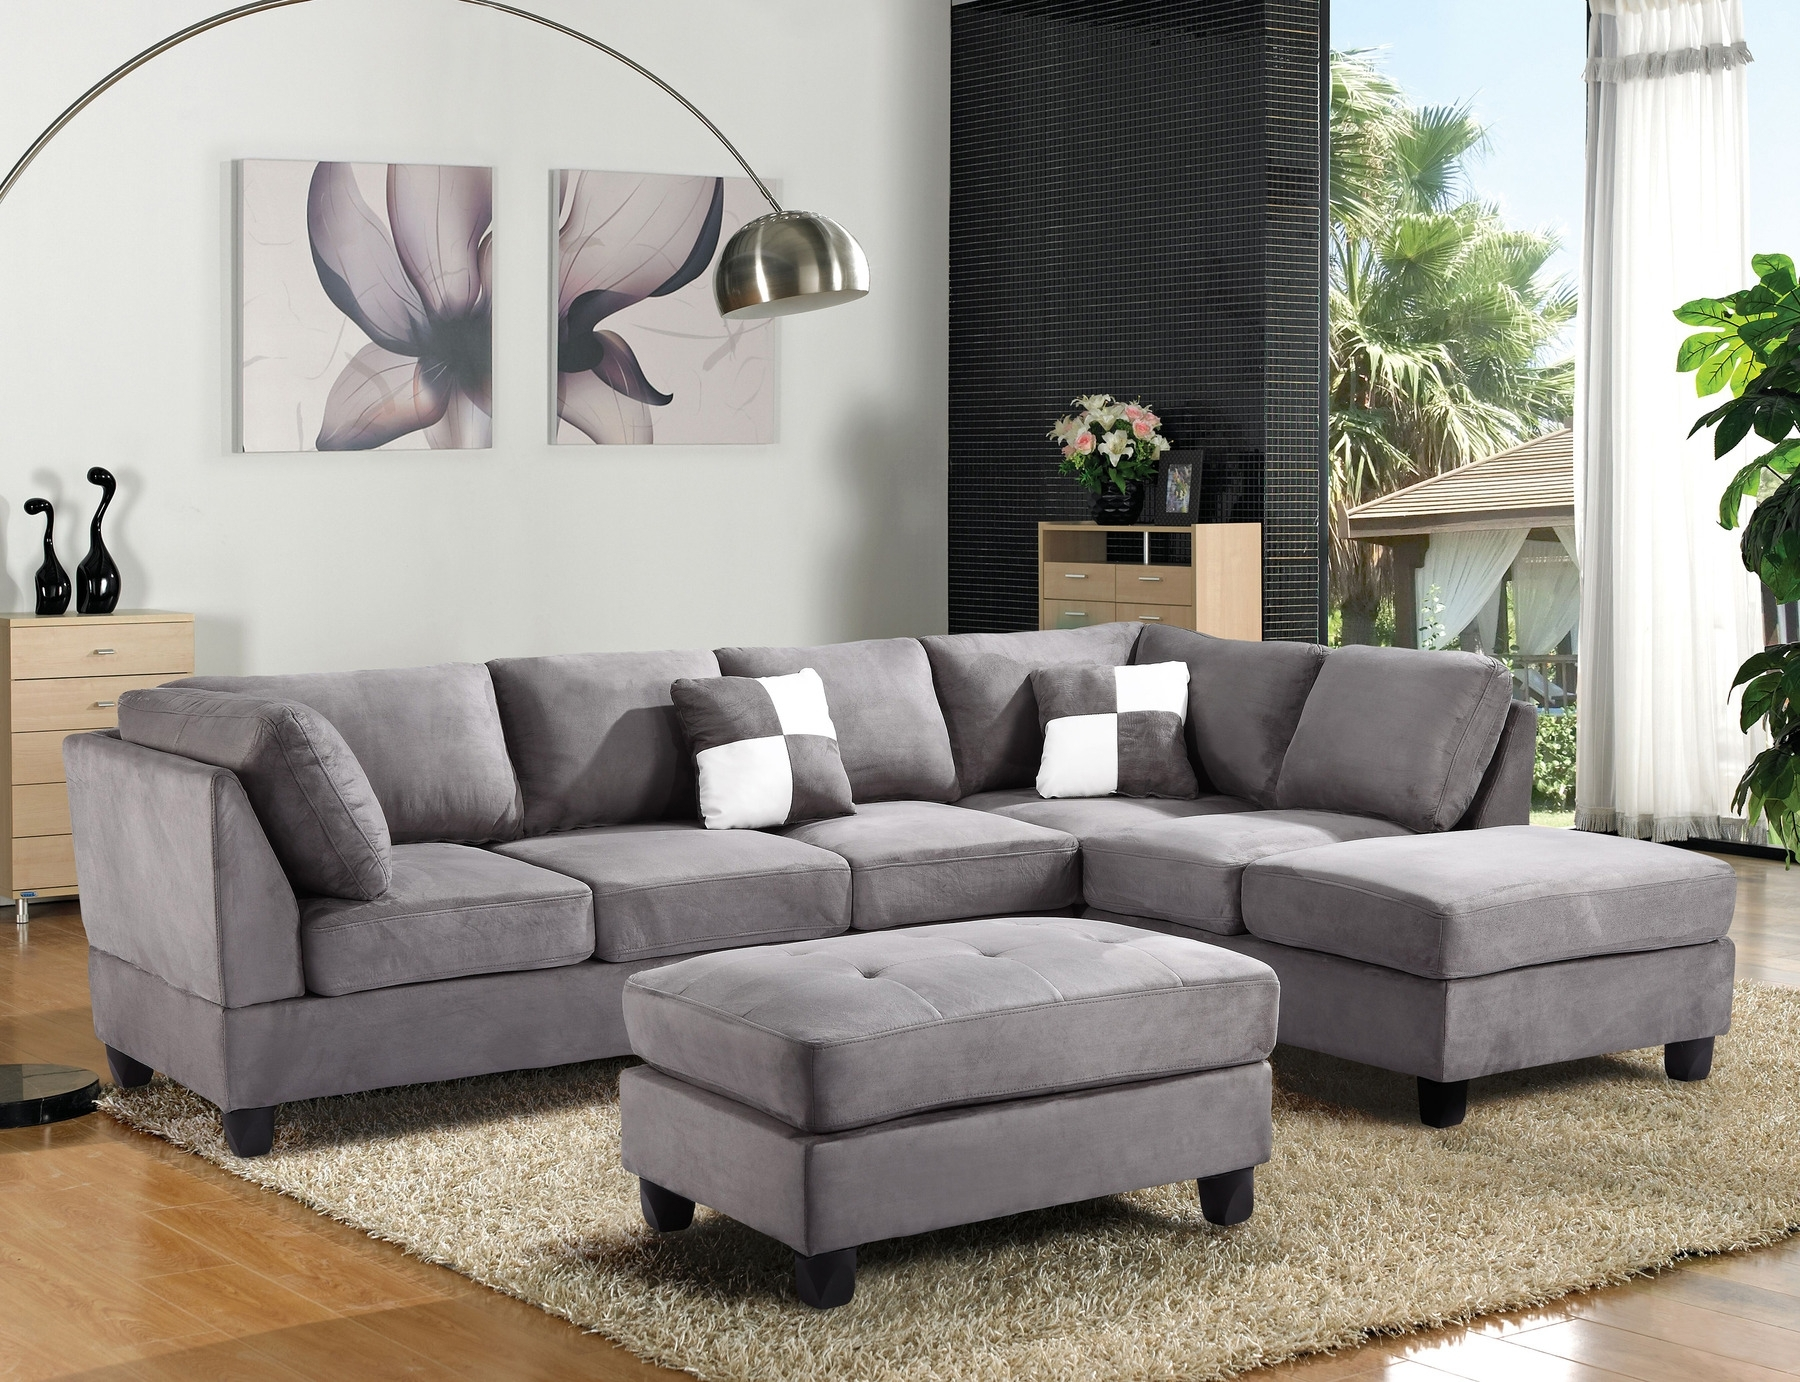 Quebec Sectional Sofas With Regard To Well Known Off Agata Light Grey Sectional Sofas Gray Sofa Modern Fabric (Gallery 9 of 20)